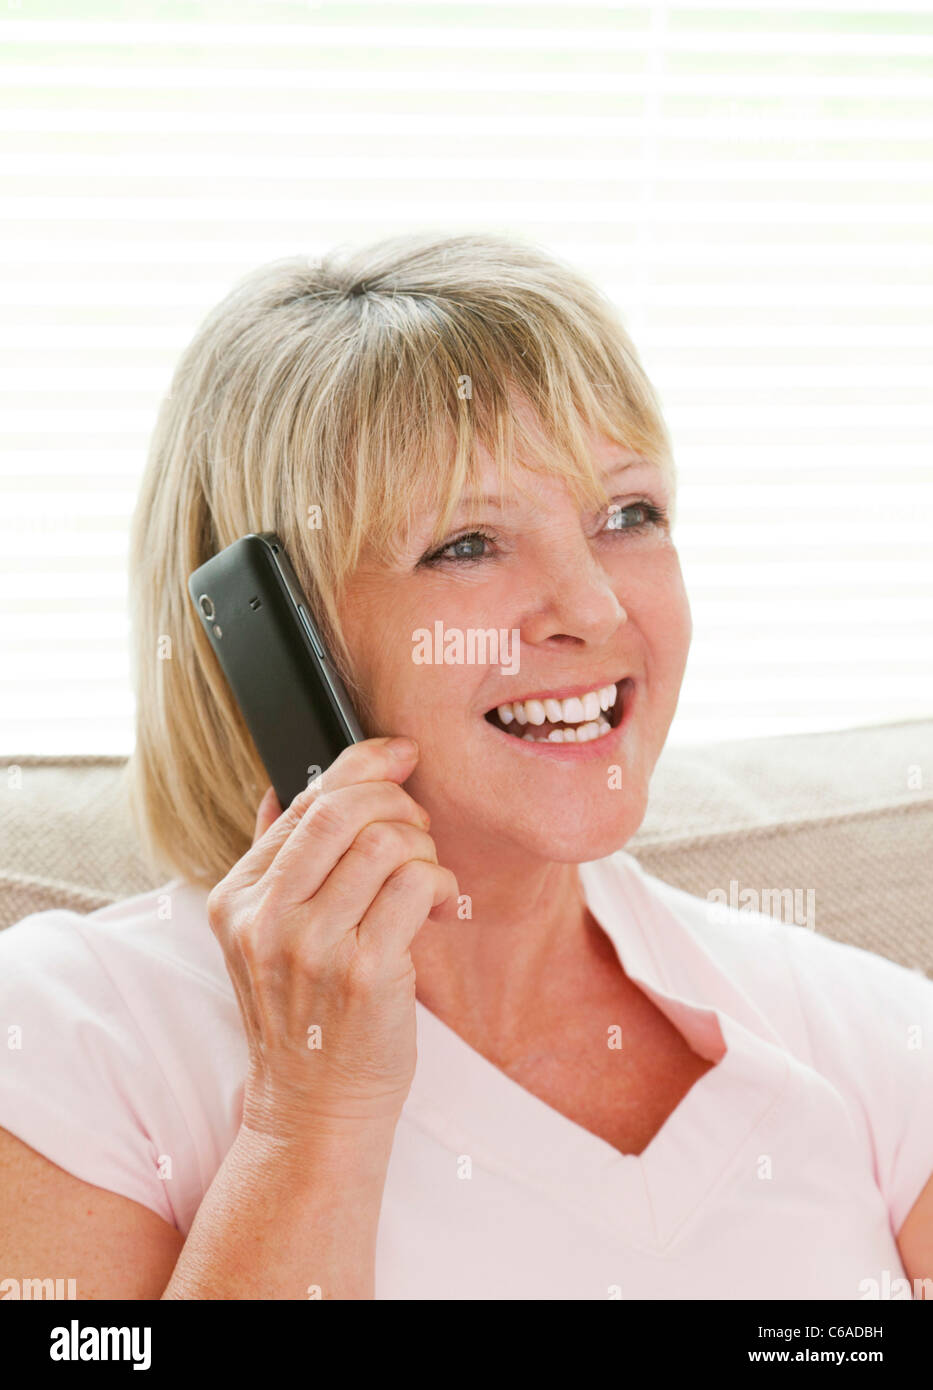 smiling woman with mobile phone - Stock Image